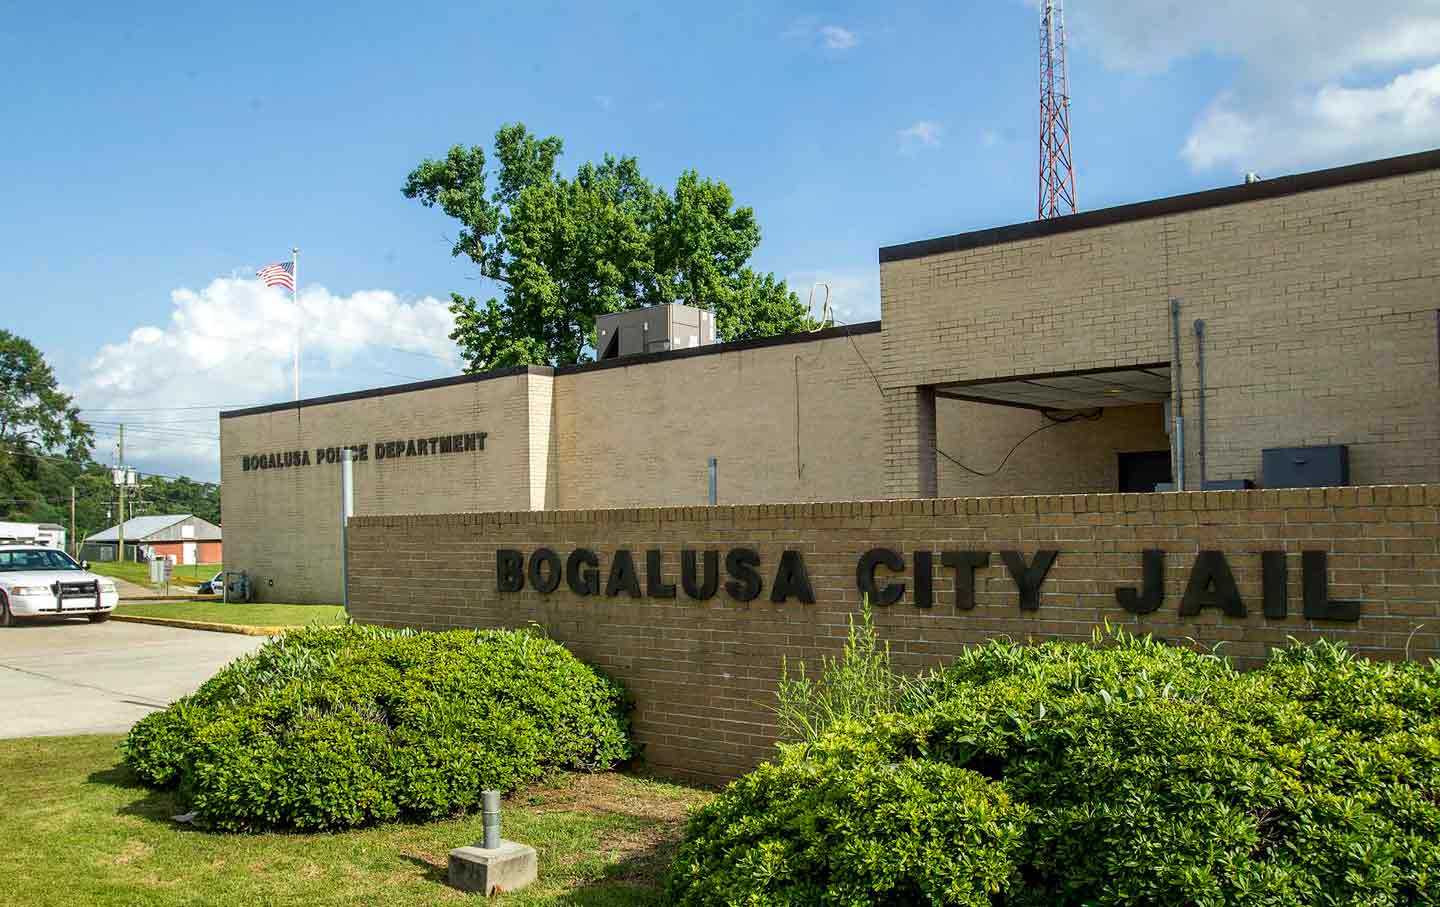 Bogalusa City Jail